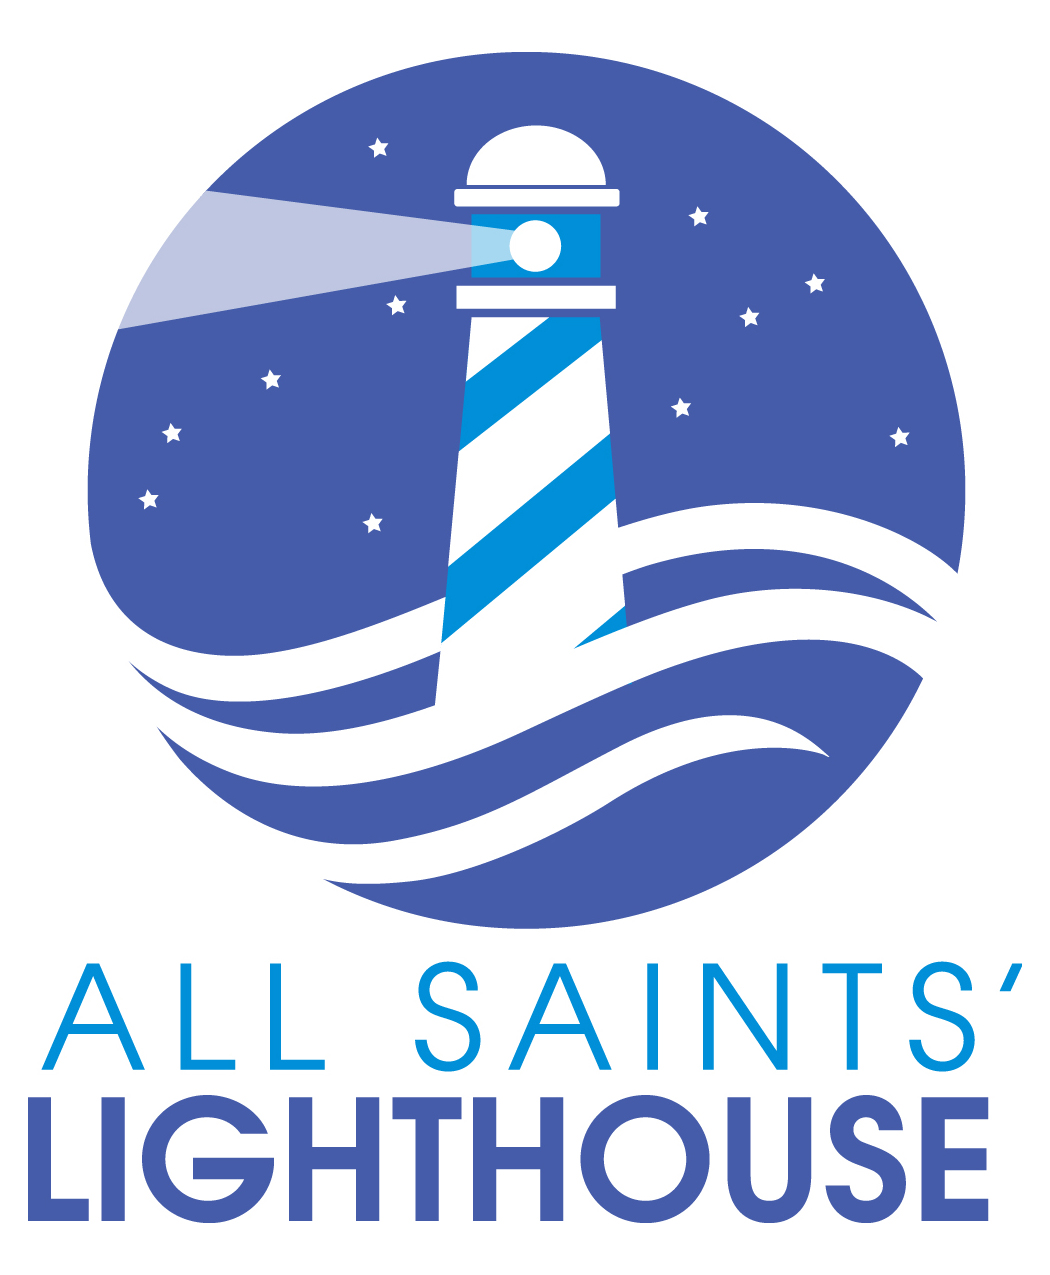 asec-lighthouse_511